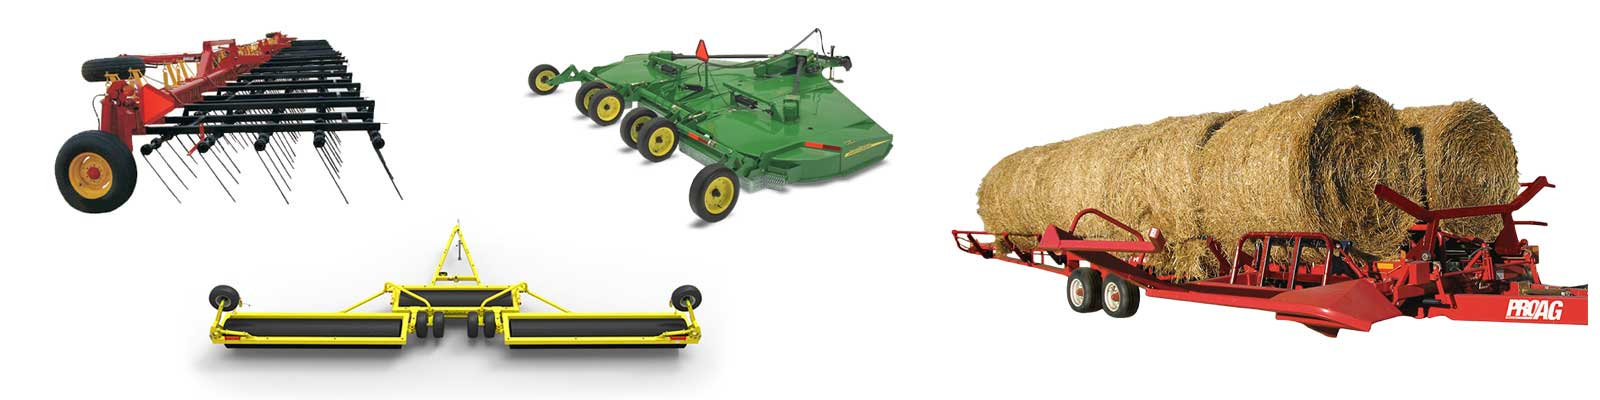 Farm Equipment Rentals in Glasgow MT